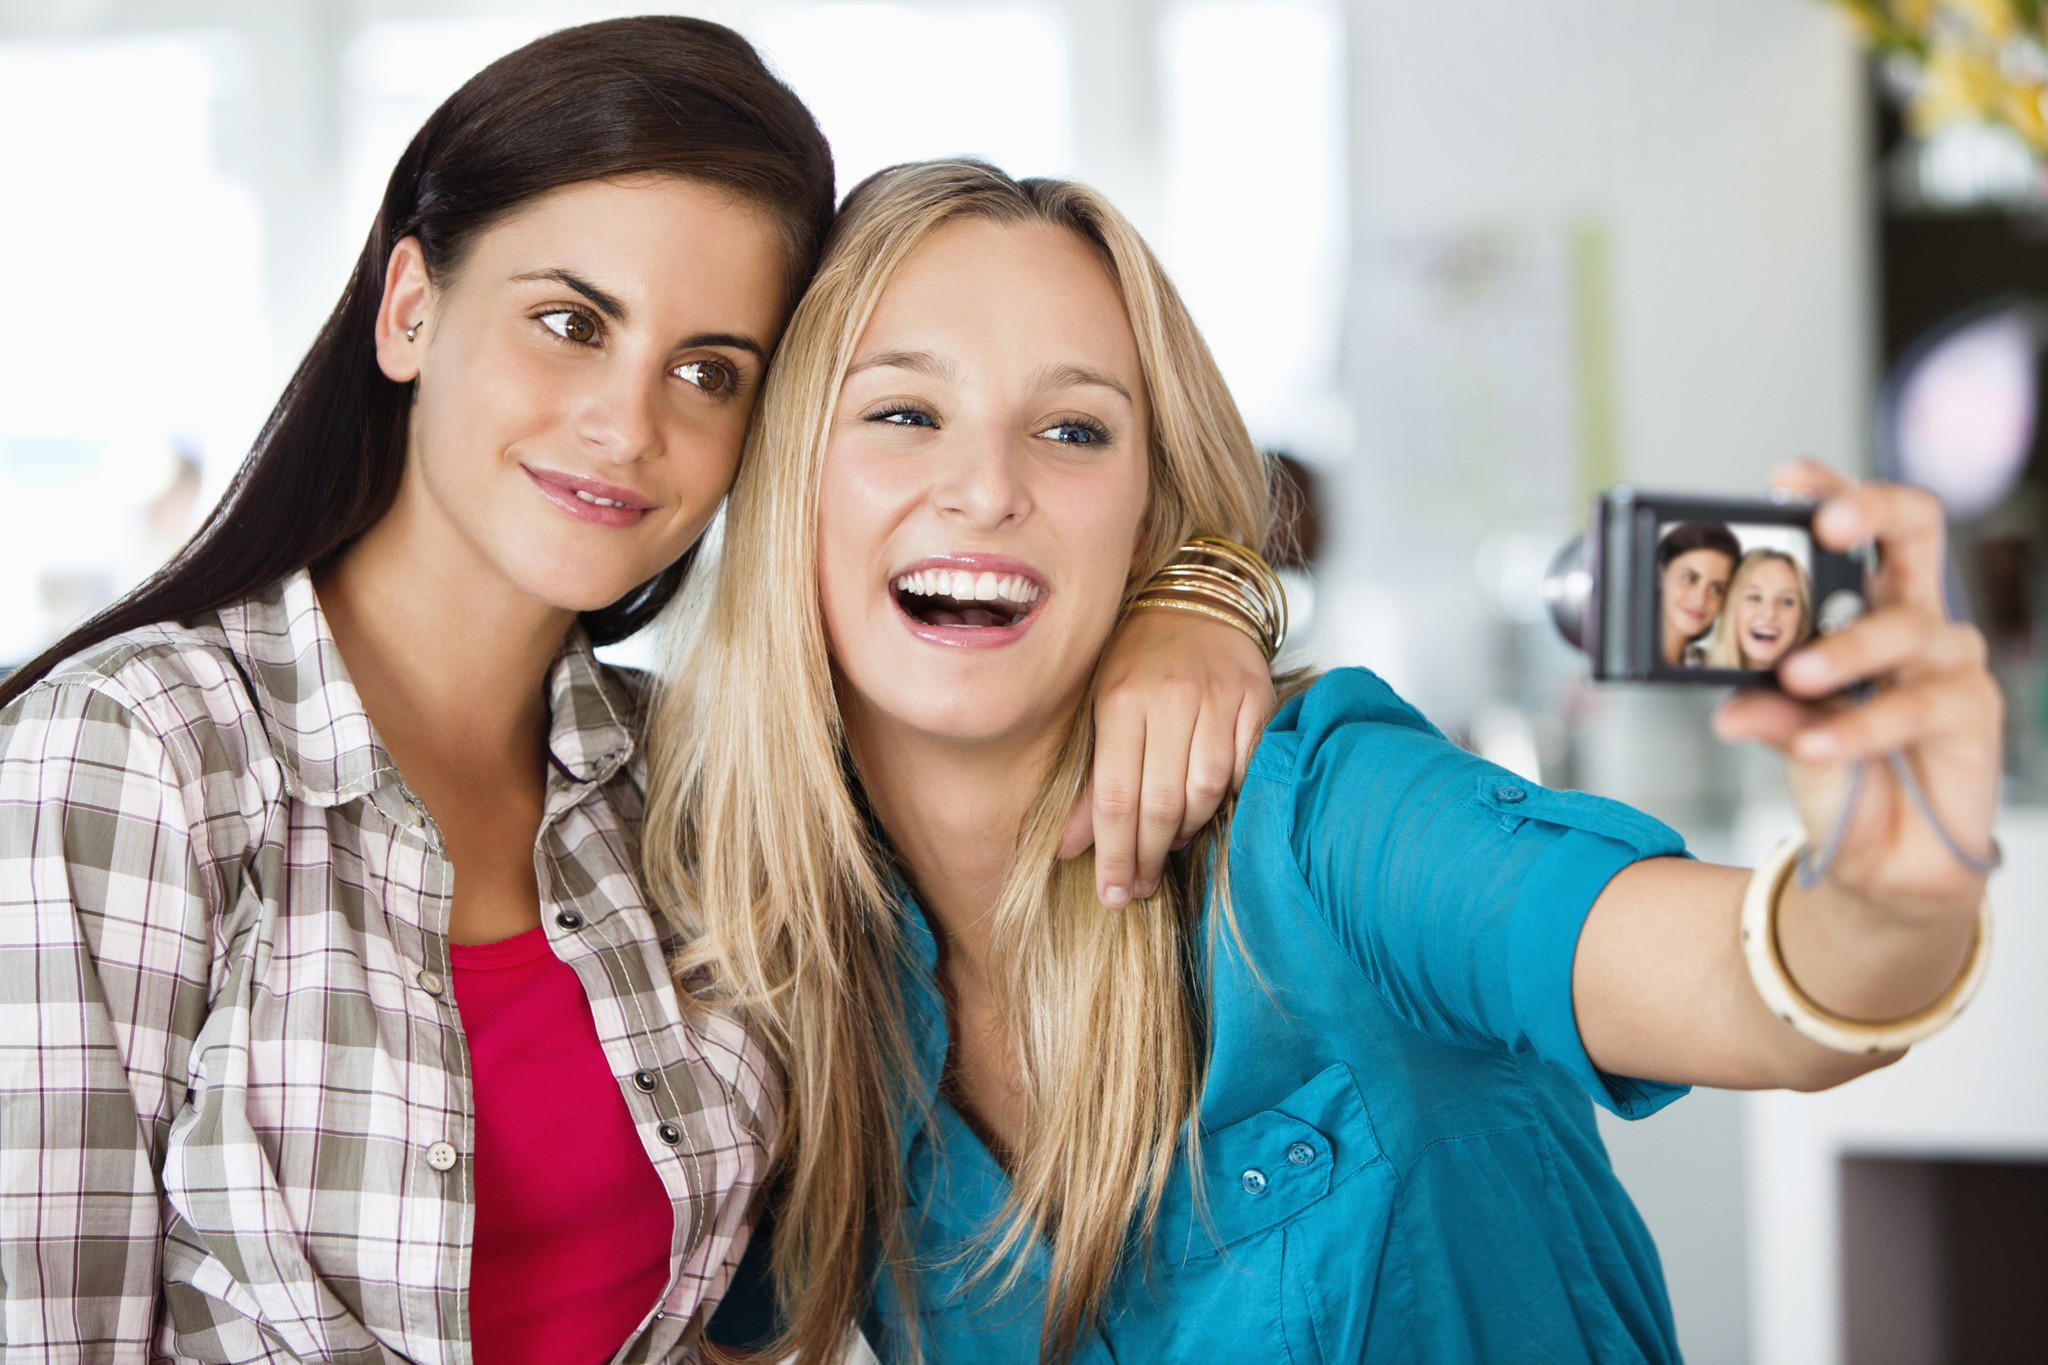 Female friends take a picture of themselves with a camera.